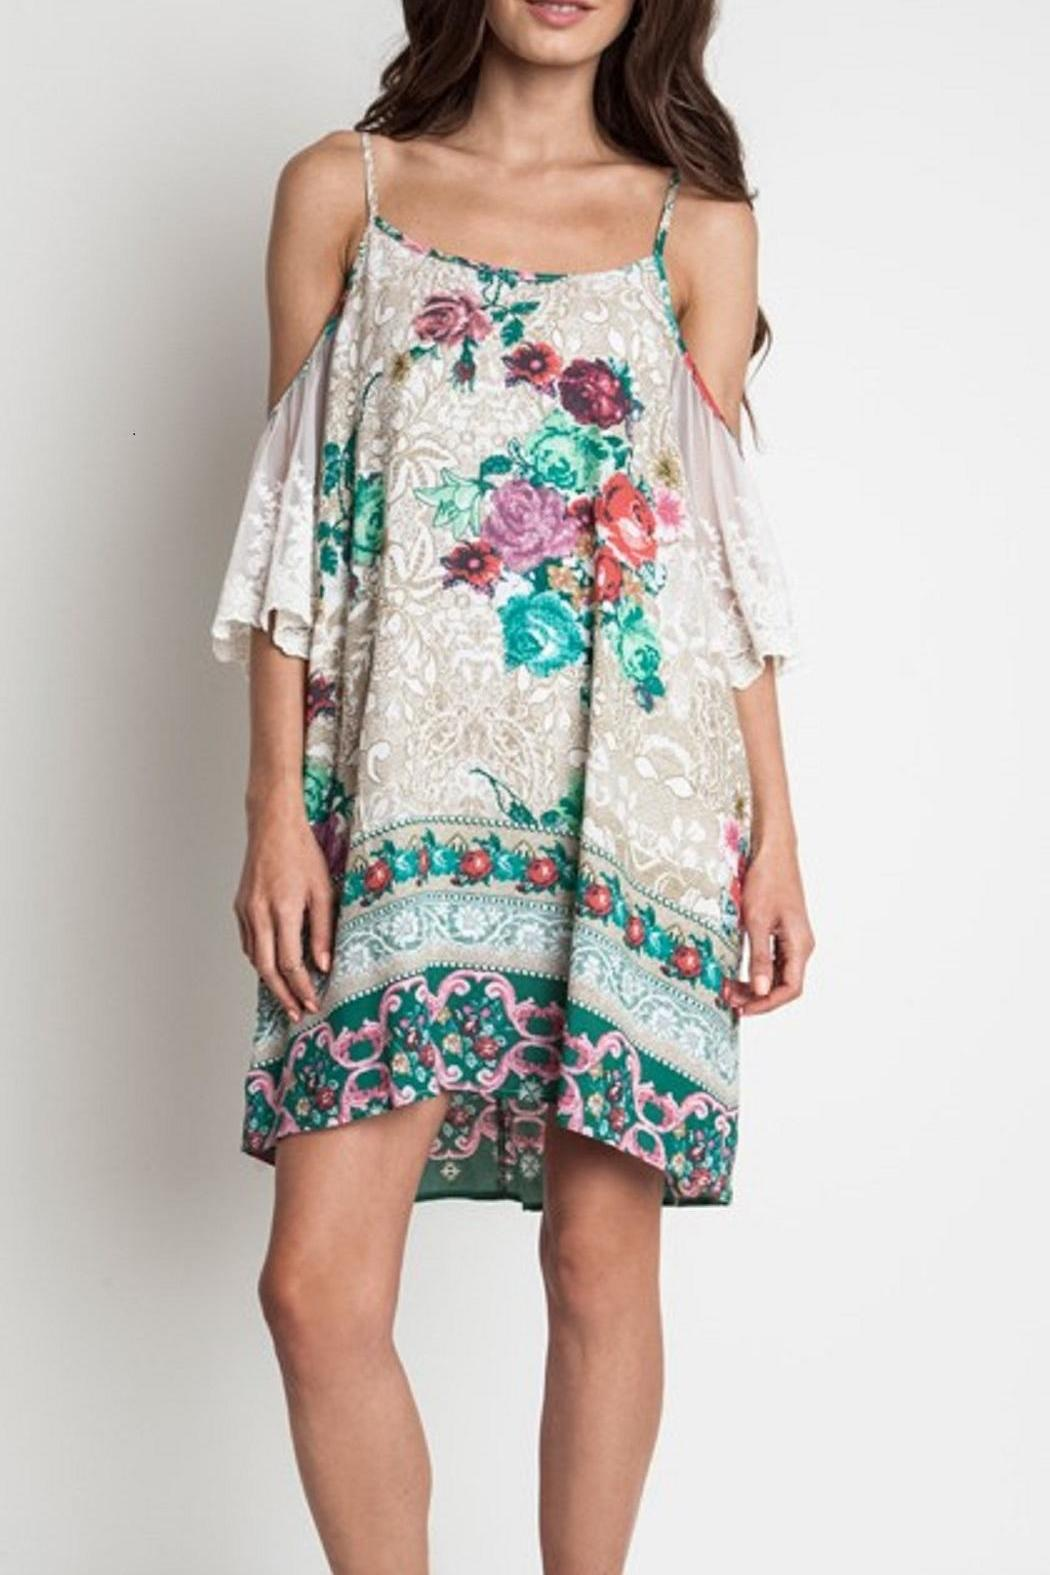 Umgee USA Floral Lace Dress - Main Image